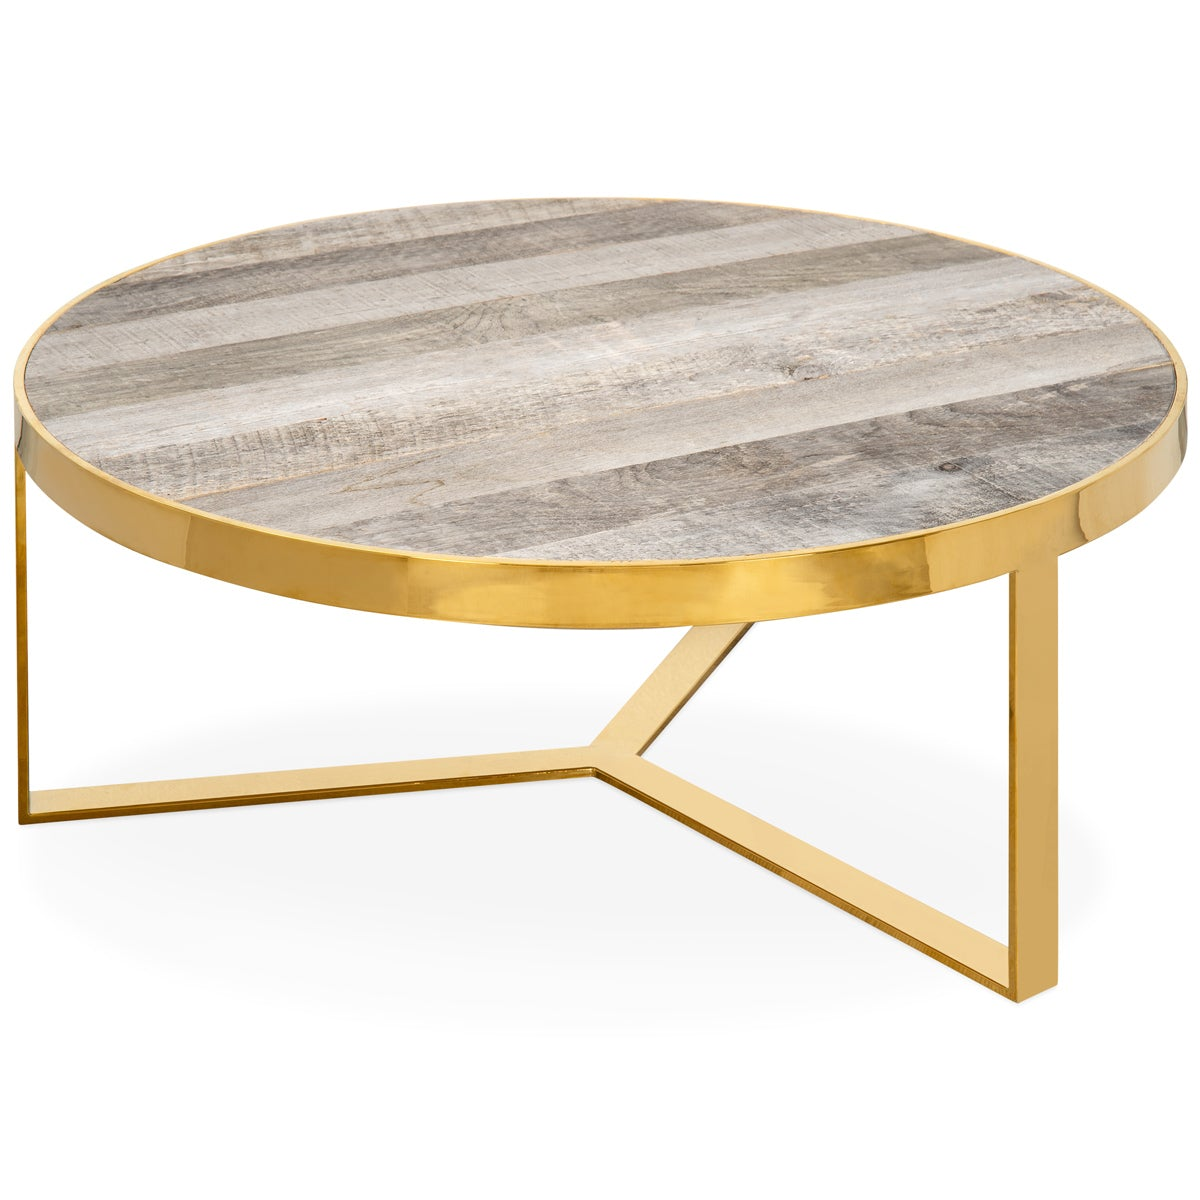 Upper East Side Coffee Table in Reclaimed Wood - ModShop1.com